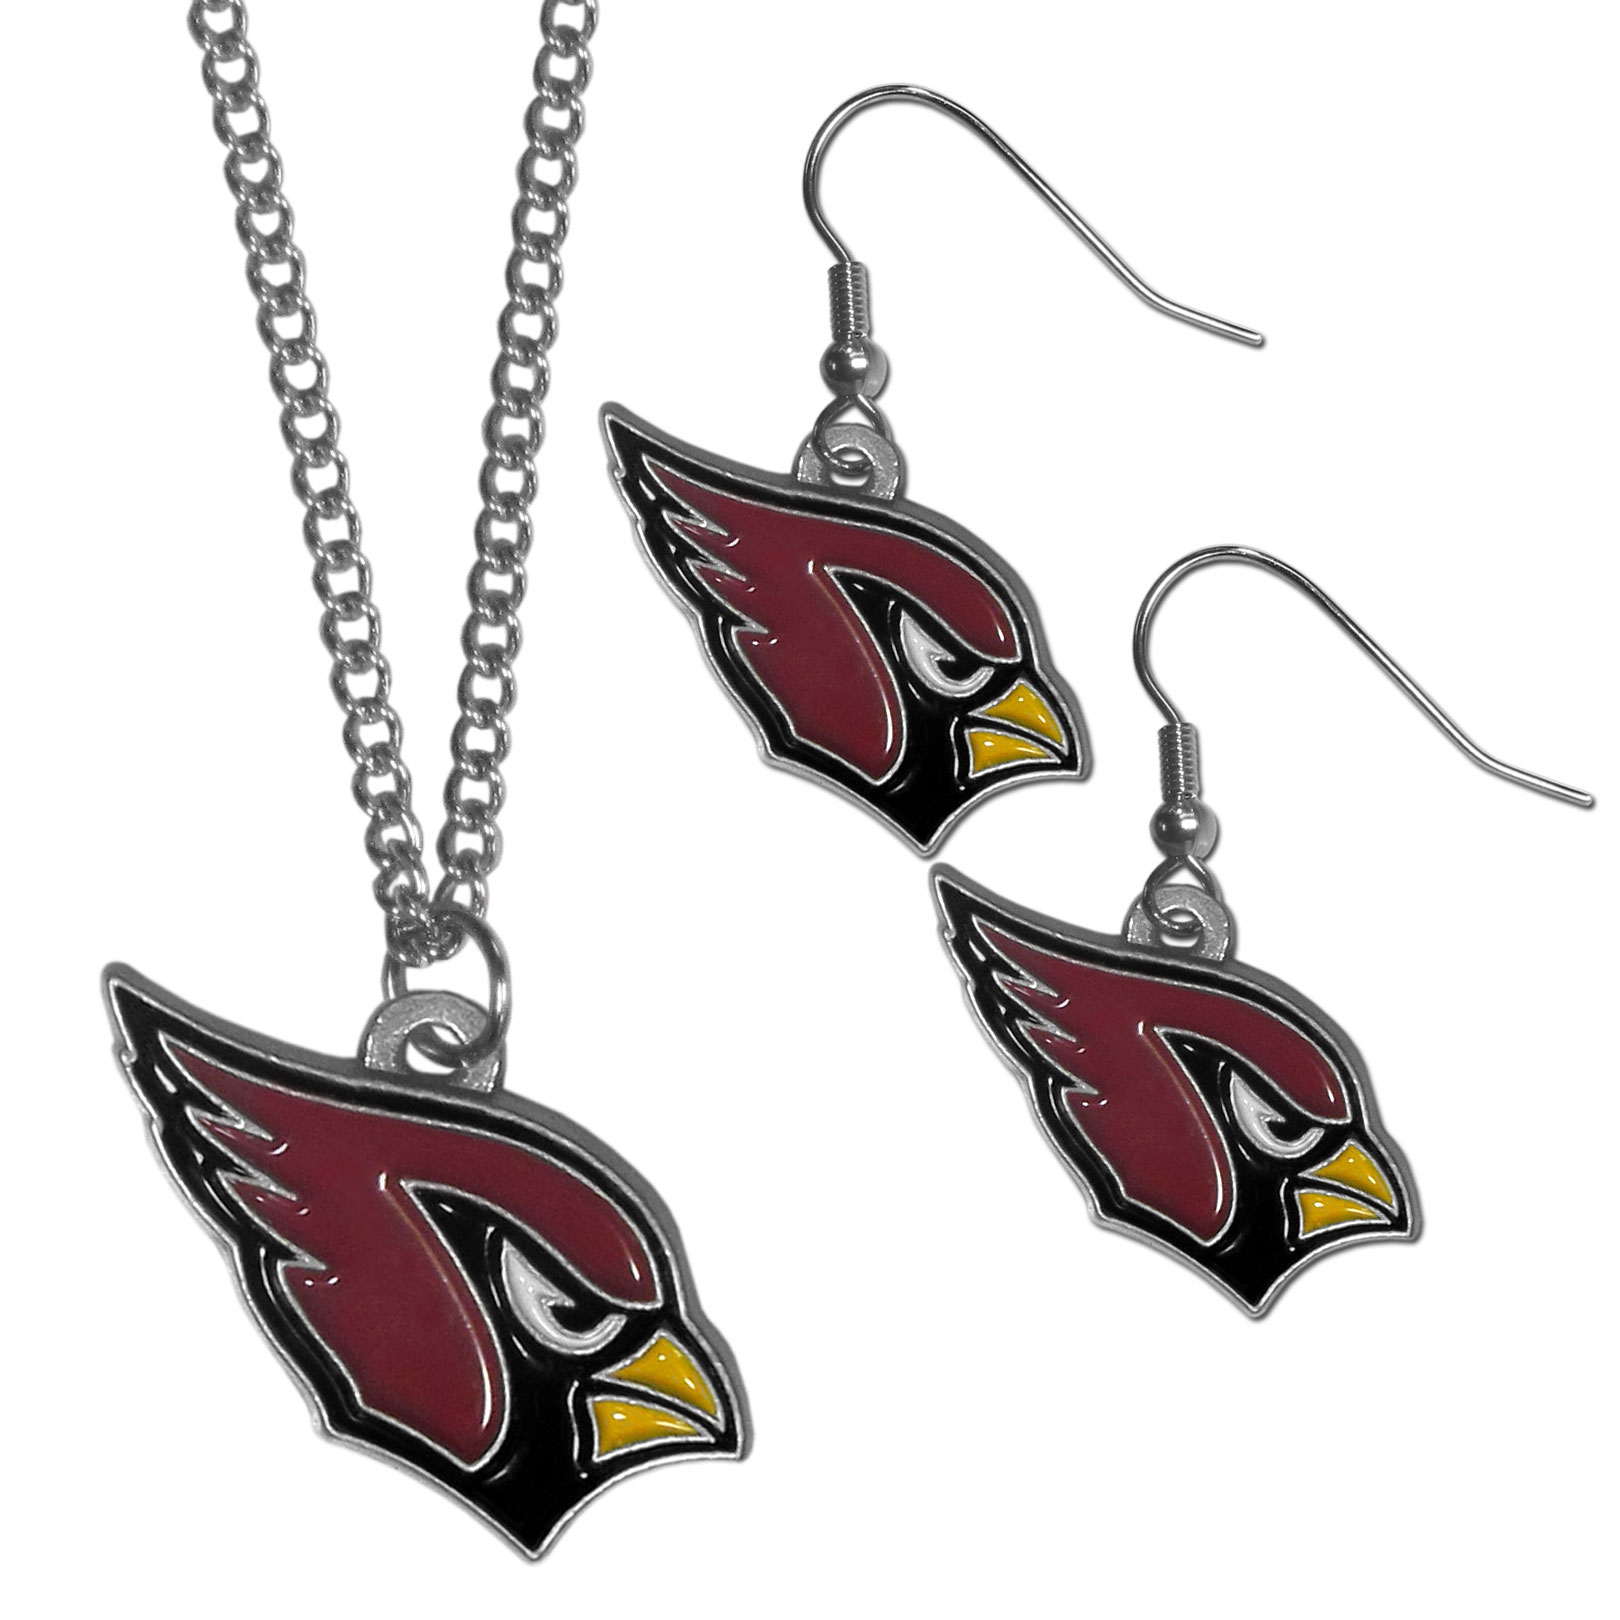 Arizona Cardinals Dangle Earrings and Chain Necklace Set - This classic jewelry set contains are most popular Arizona Cardinals dangle earrings and 22 inch chain necklace. The trendy, dangle earrings are lightweight and feature a fully cast metal team charm with enameled team colors. The matching necklace completes this fashion forward combo and is a spirited set that is perfect for game day but nice enough for everyday.